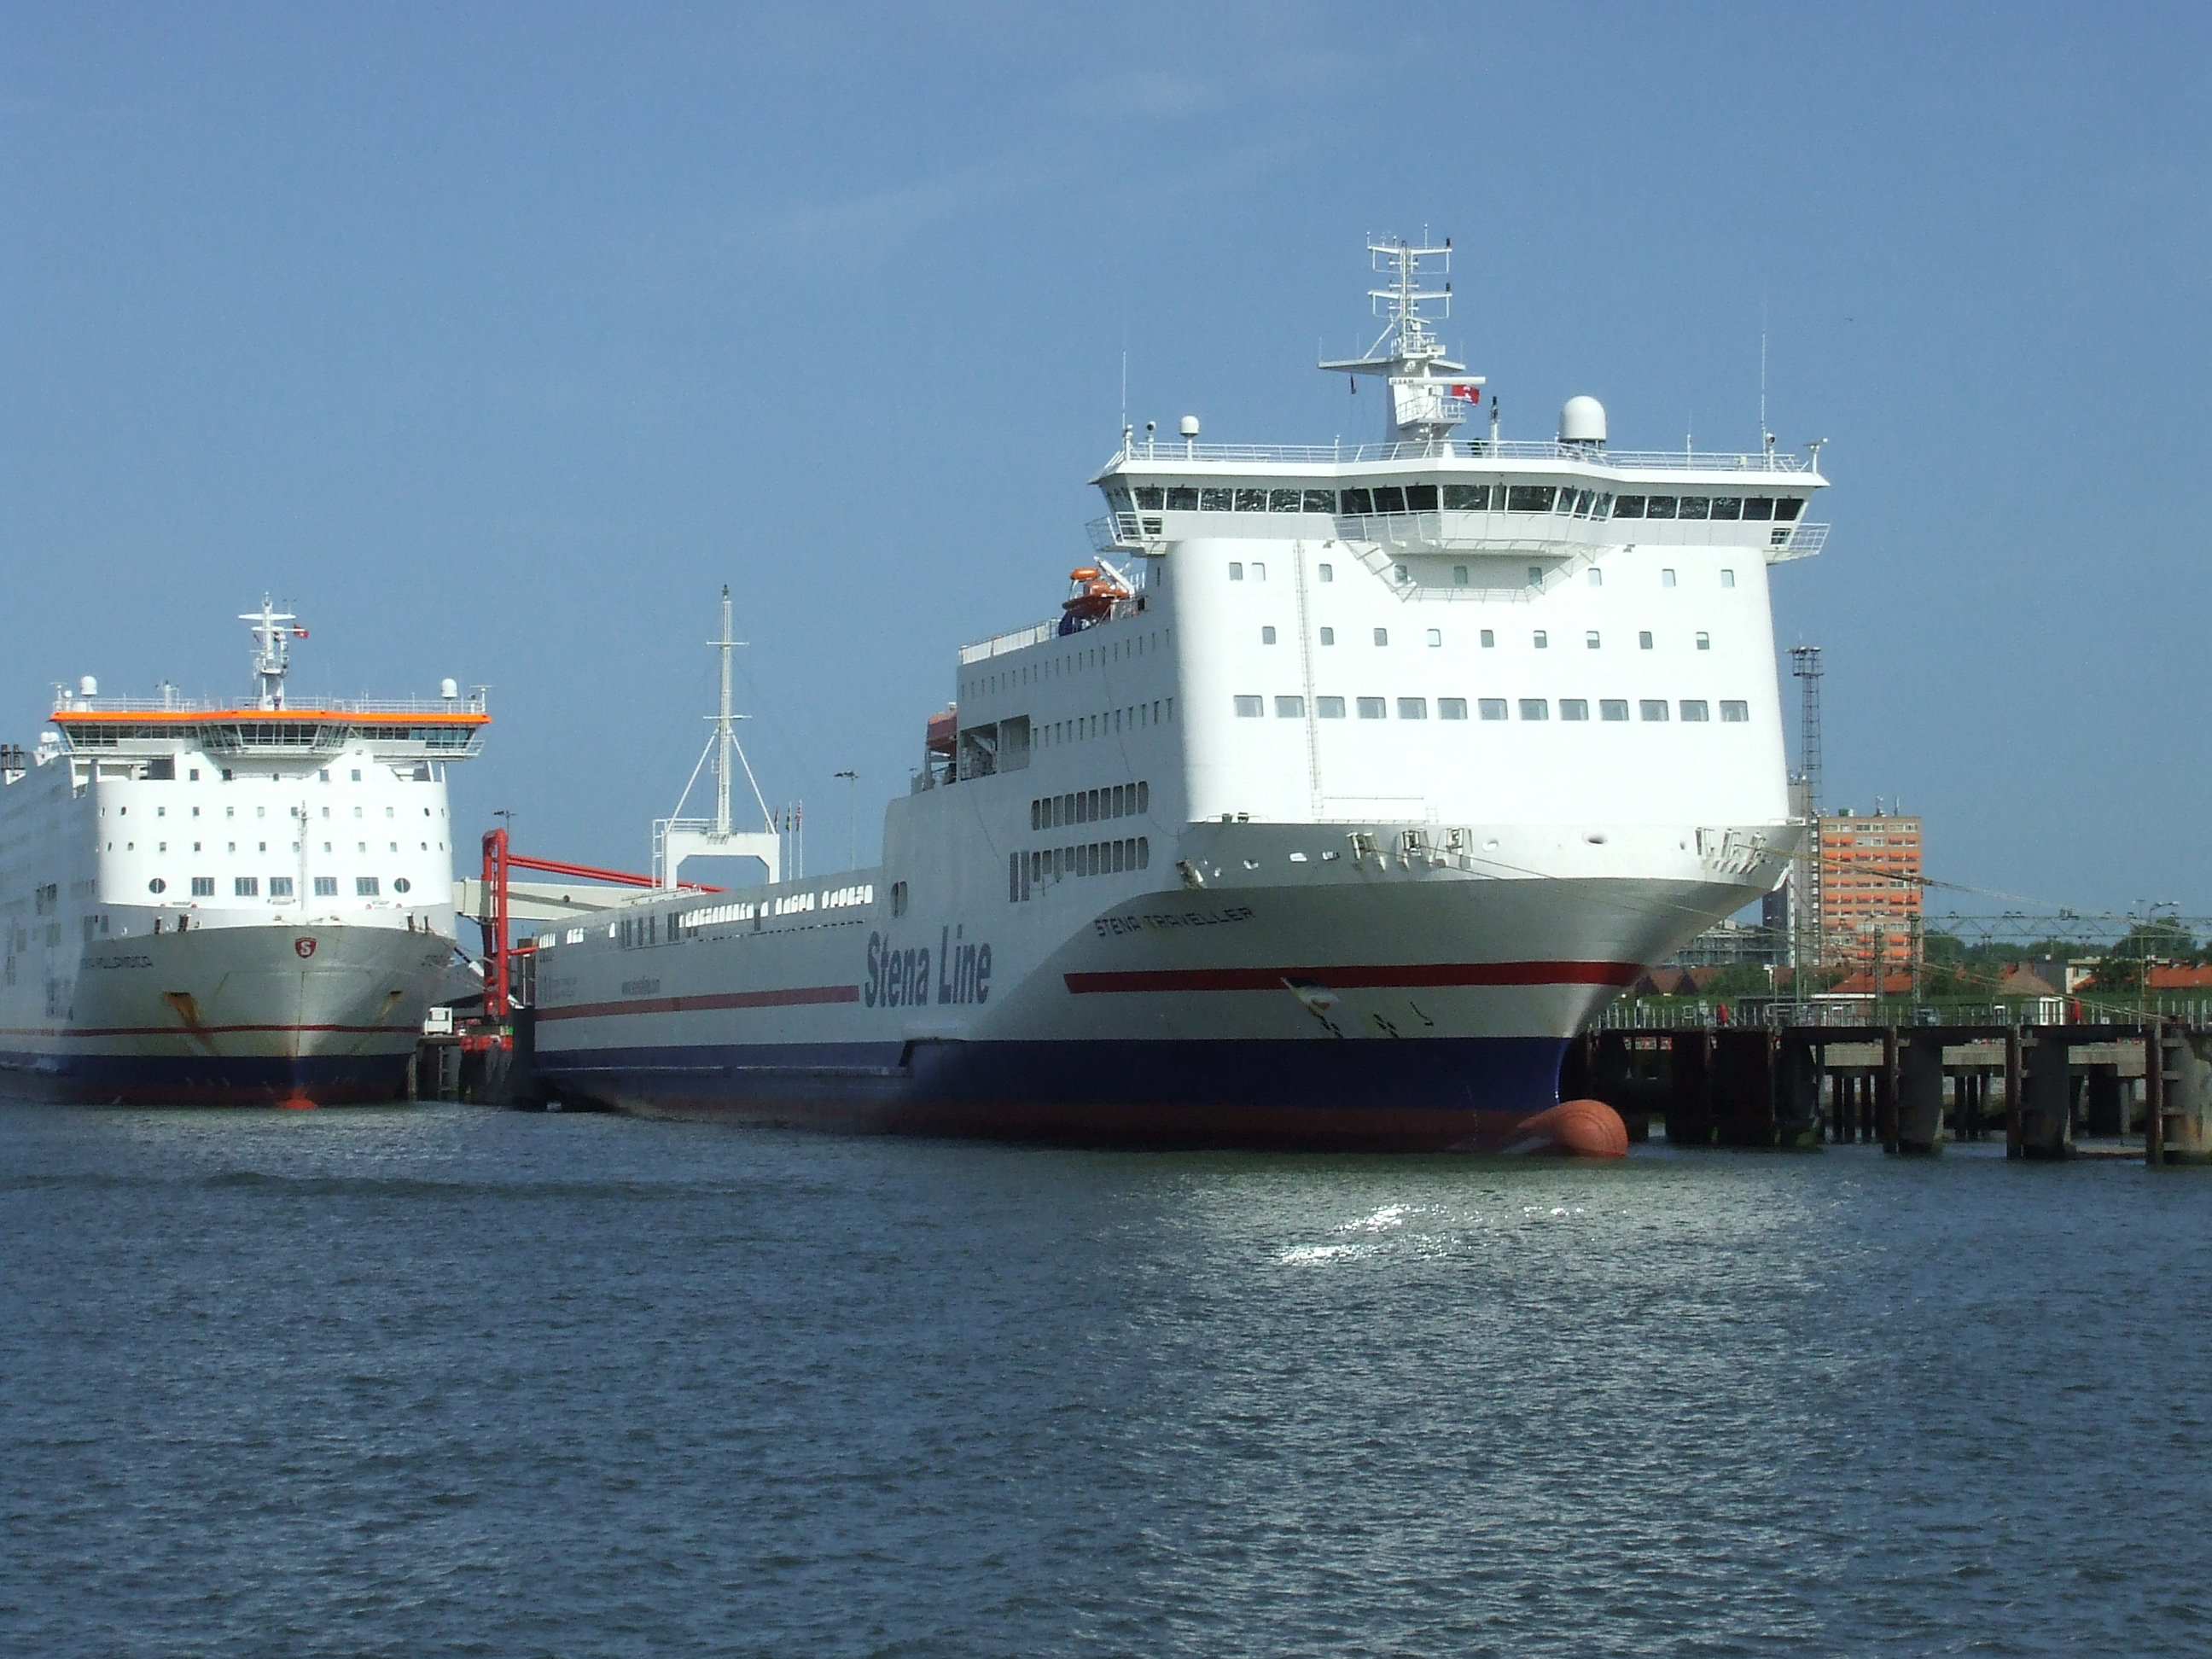 Stena Line's terminal in the Hook of Holland